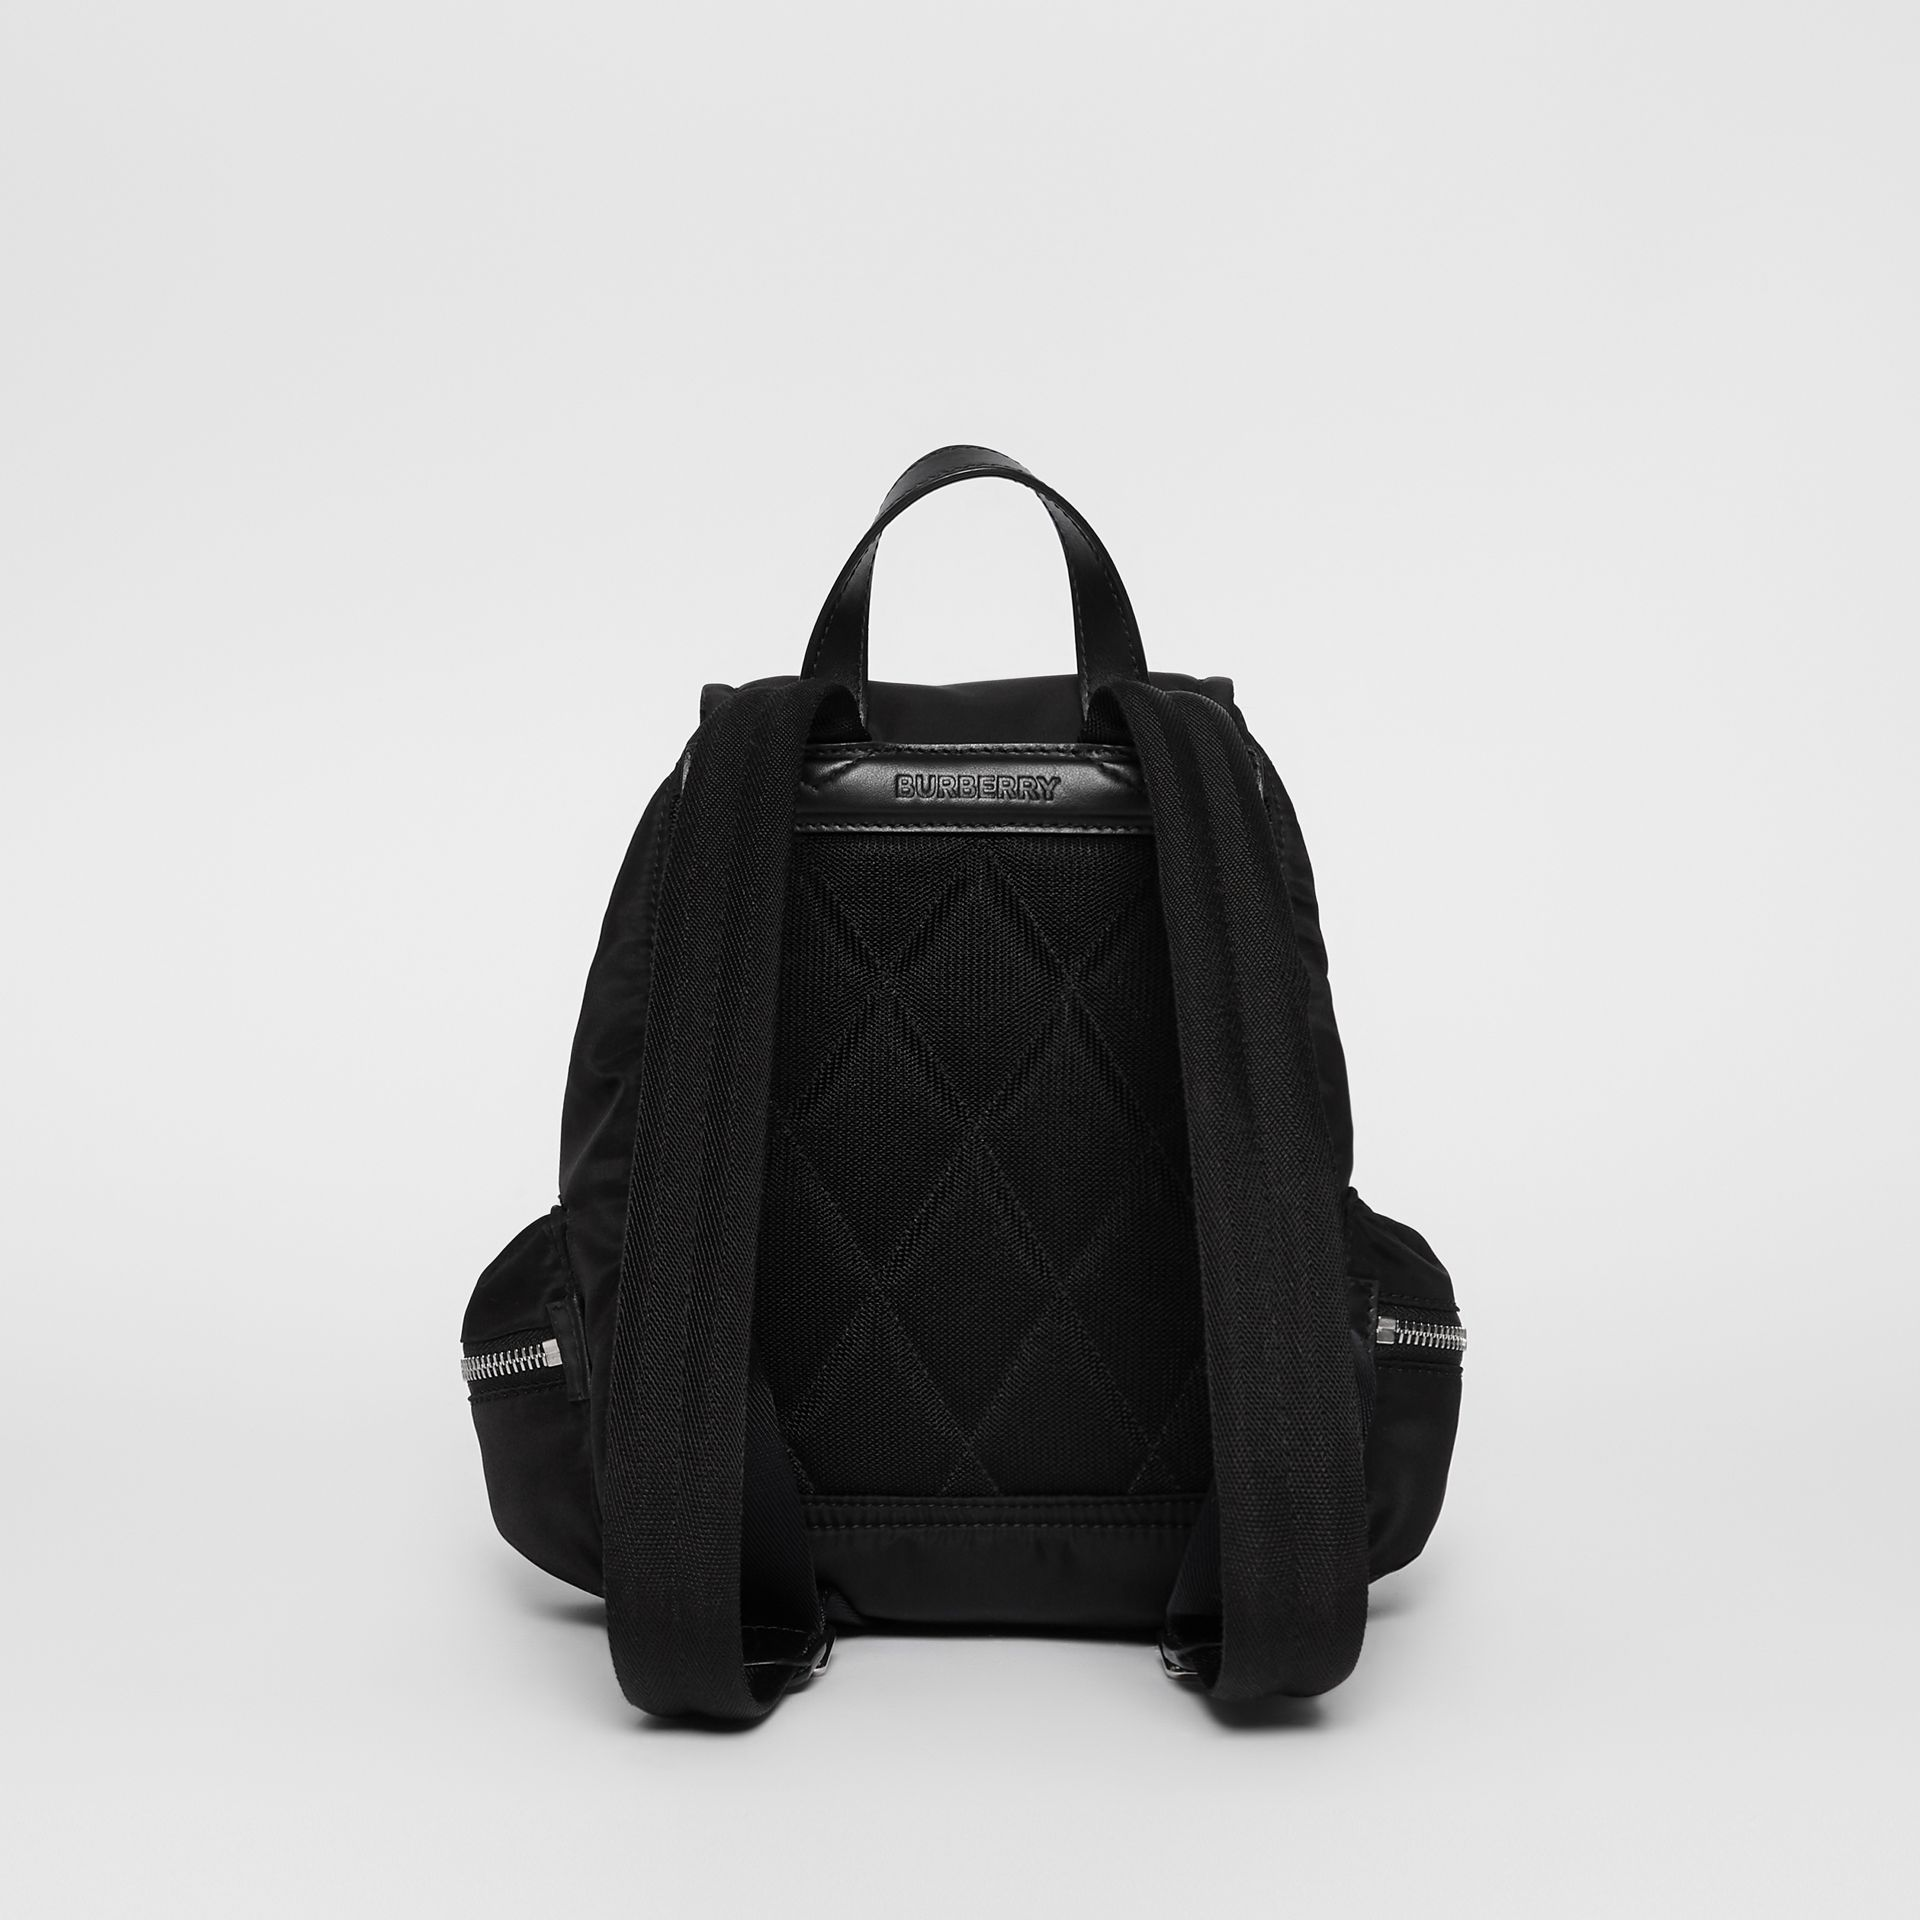 Petit sac The Rucksack en nylon avec logo (Noir) - Femme | Burberry - photo de la galerie 7